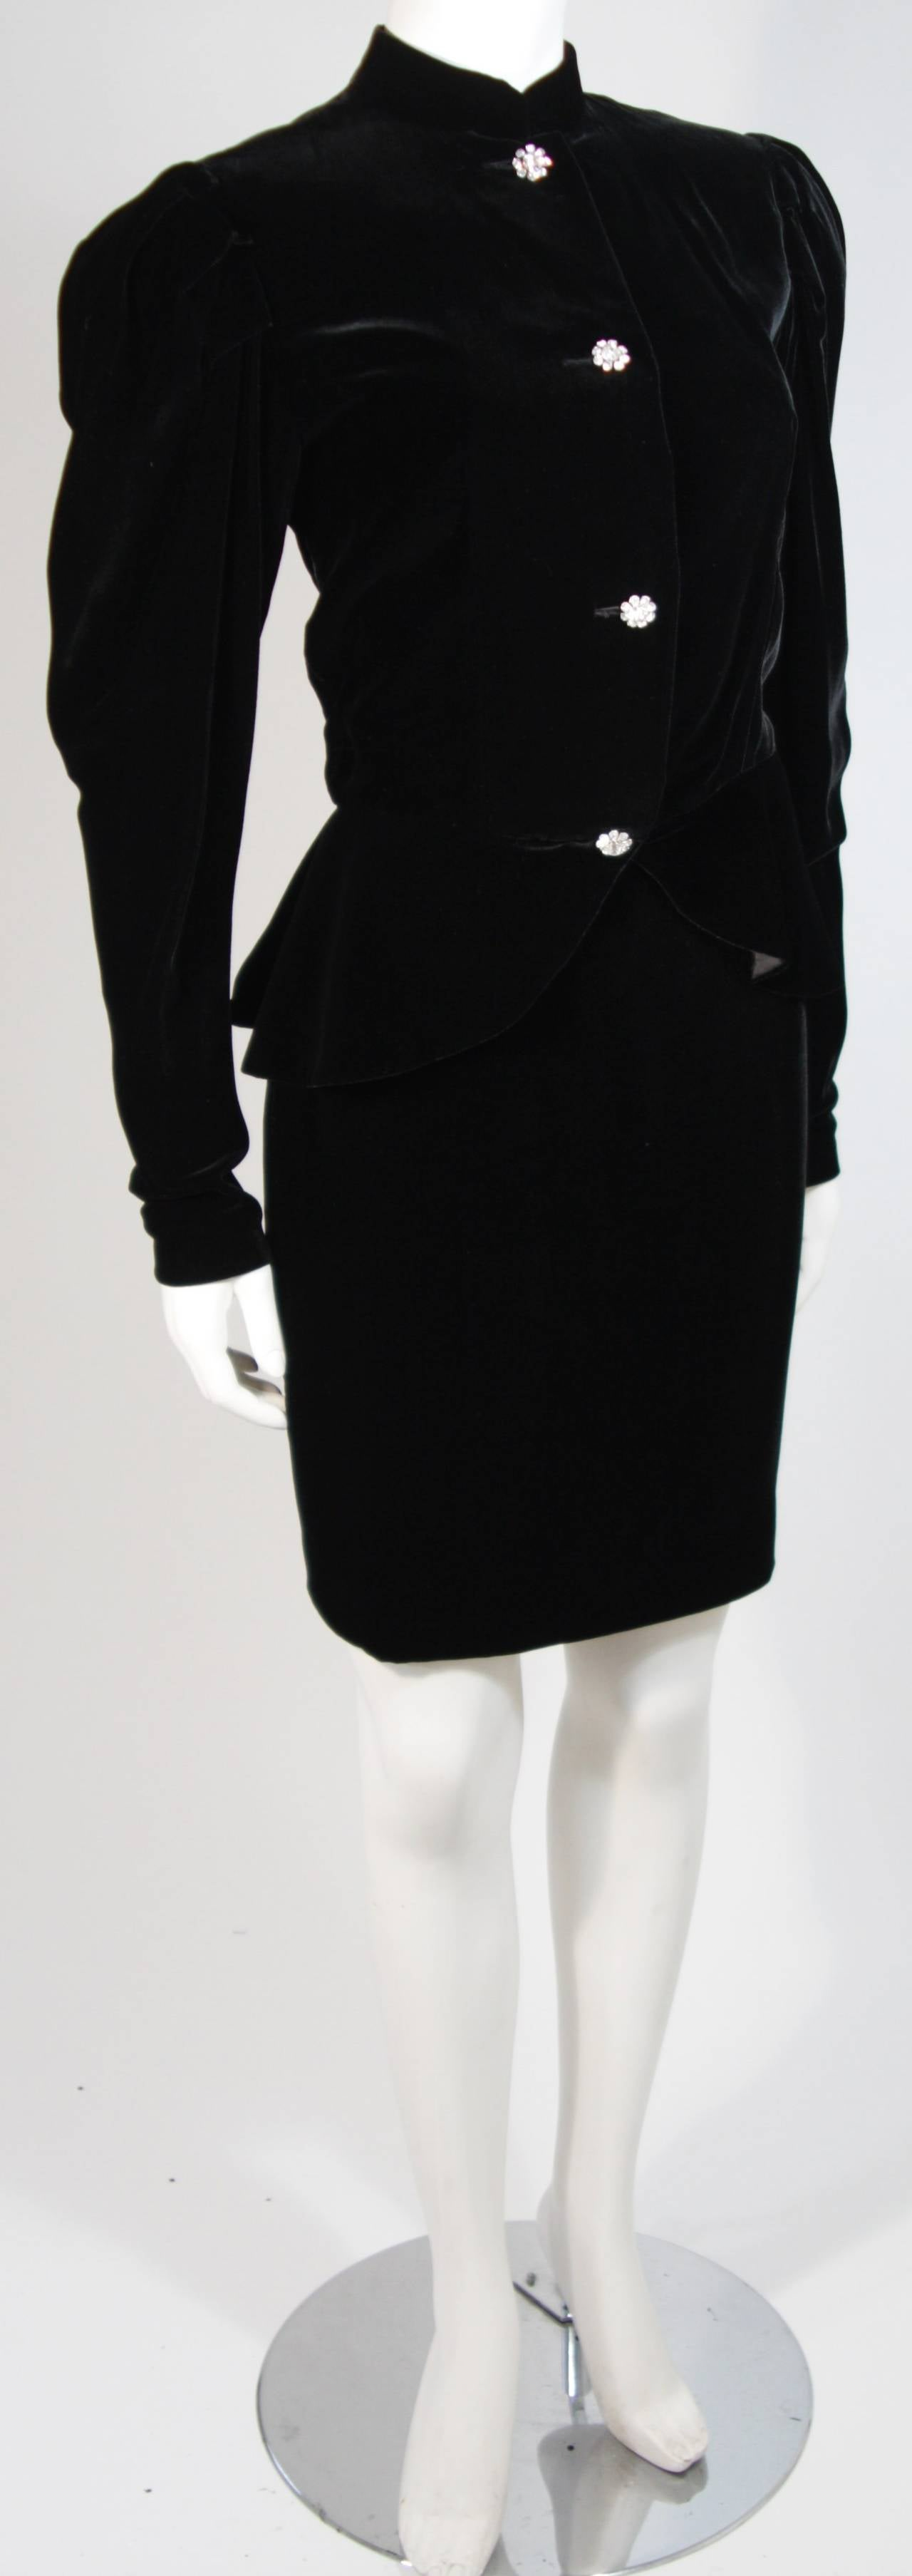 Vicky Tiel Black Velvet Skirt Suit with Rhinestone Buttons Size Small In Excellent Condition For Sale In Los Angeles, CA